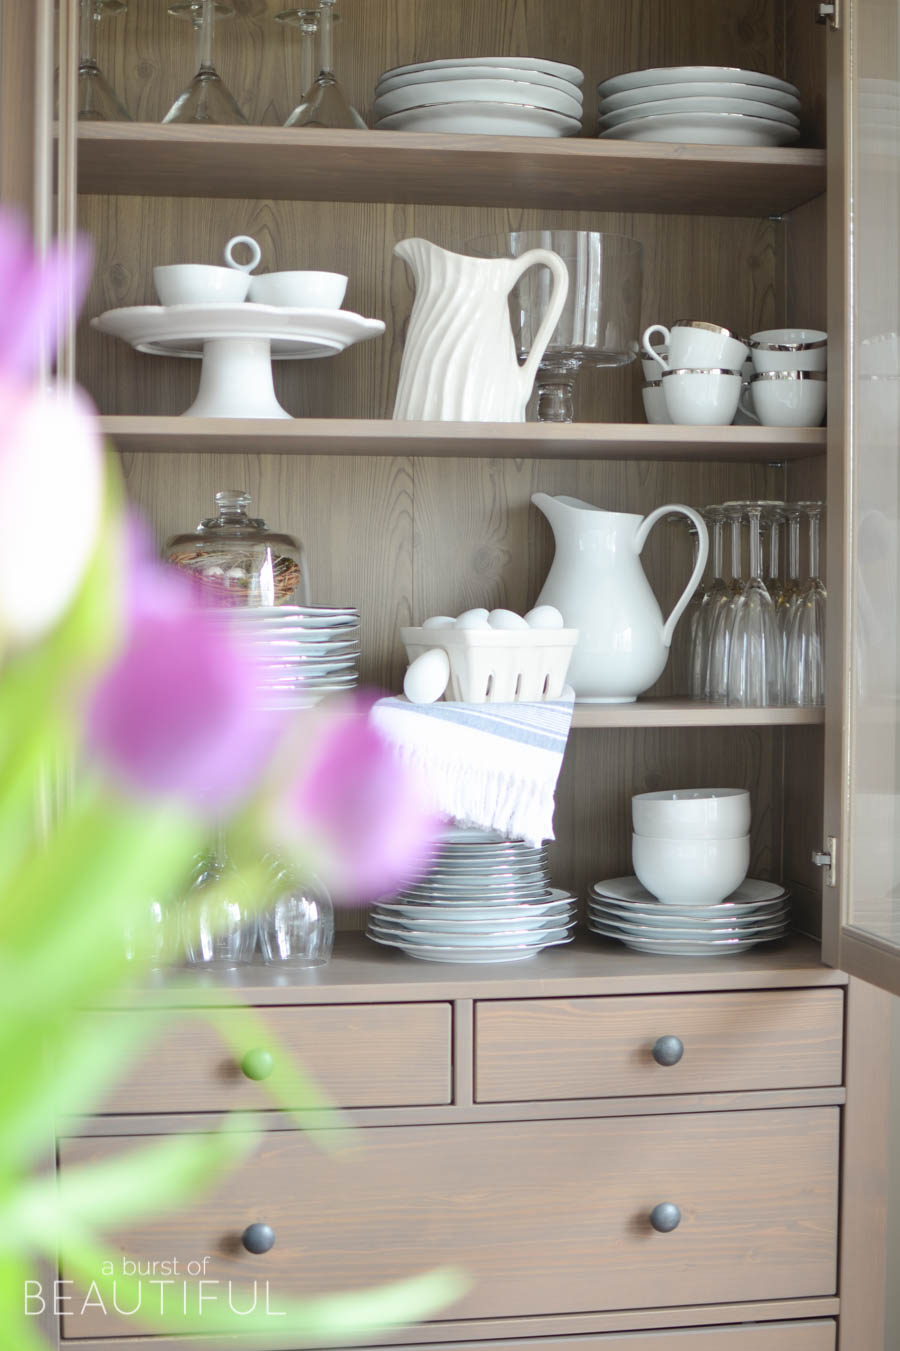 Love this hutch filled with white china